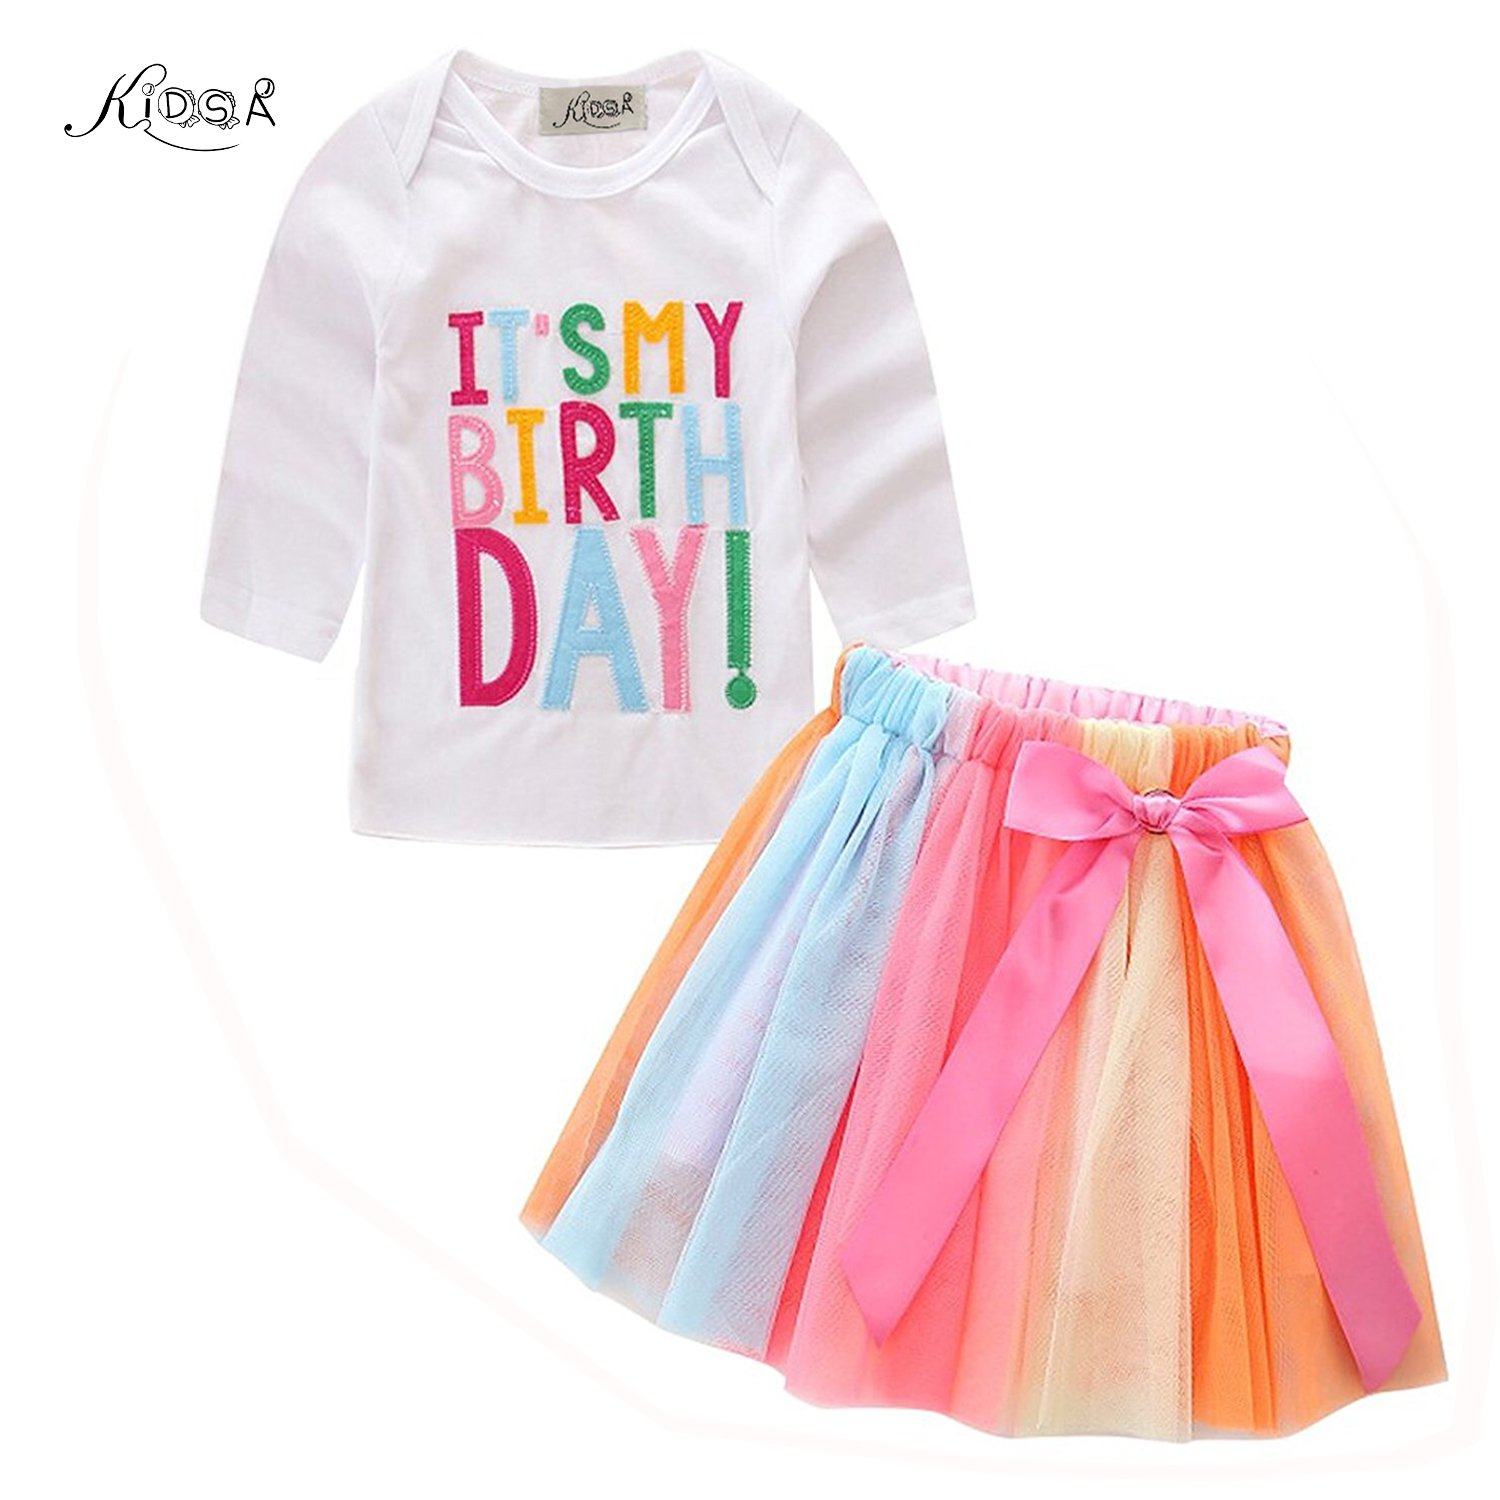 Kidsa 1-7T Baby Little Girls Long Sleeve T-shirt + Colorful Rainbow Skirts Birthday Gift Outfits Set,White-long Sleeve,90 / 2-3T